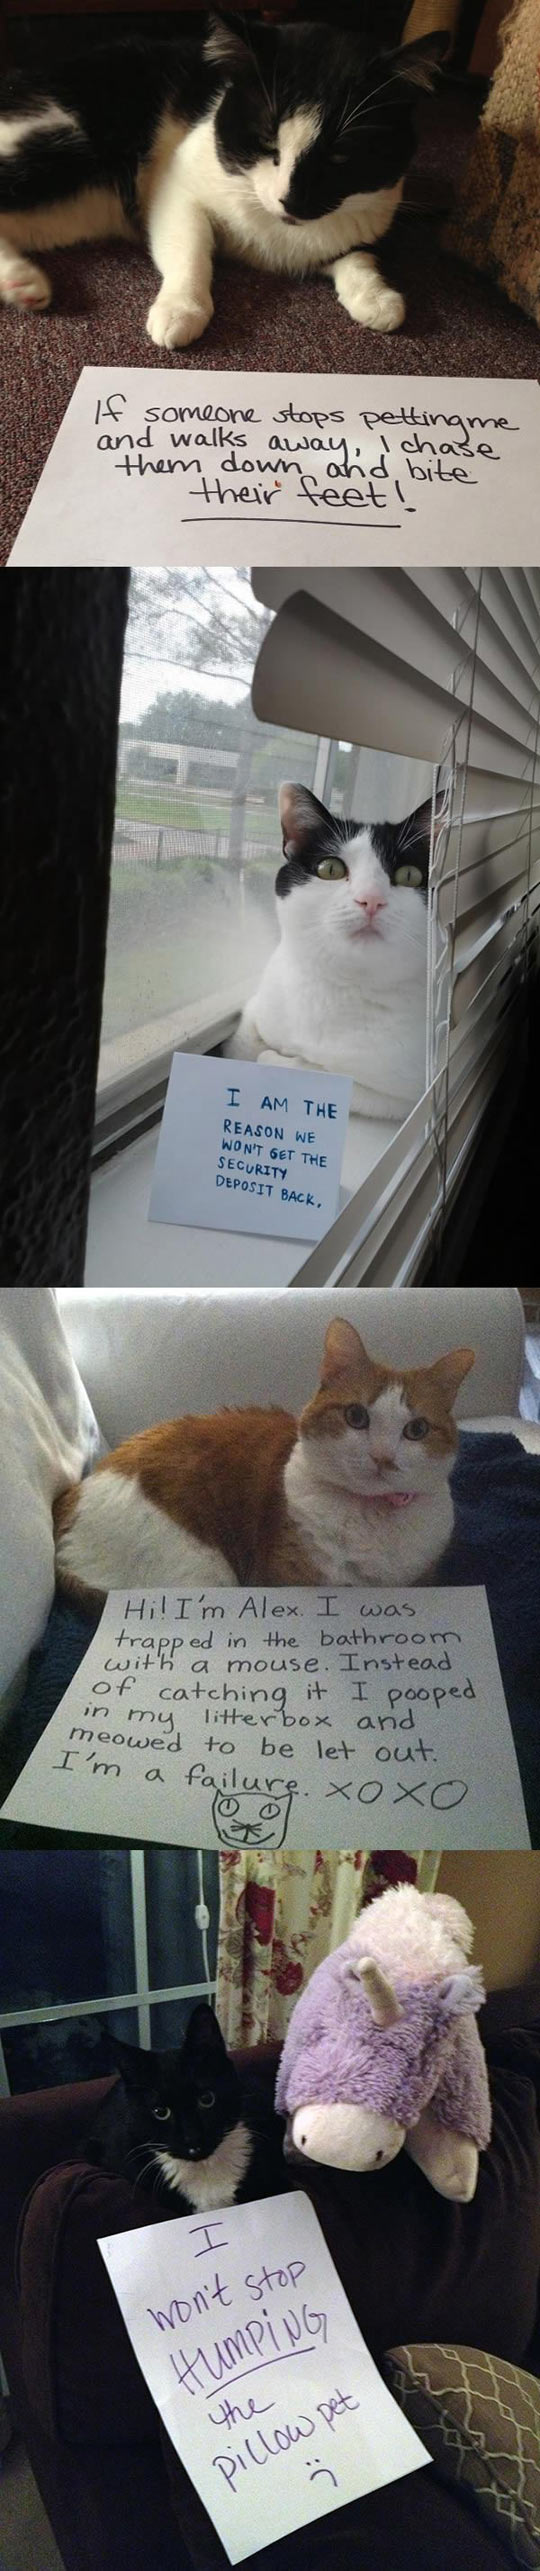 funny-cat-shaming-signs-cute-toy